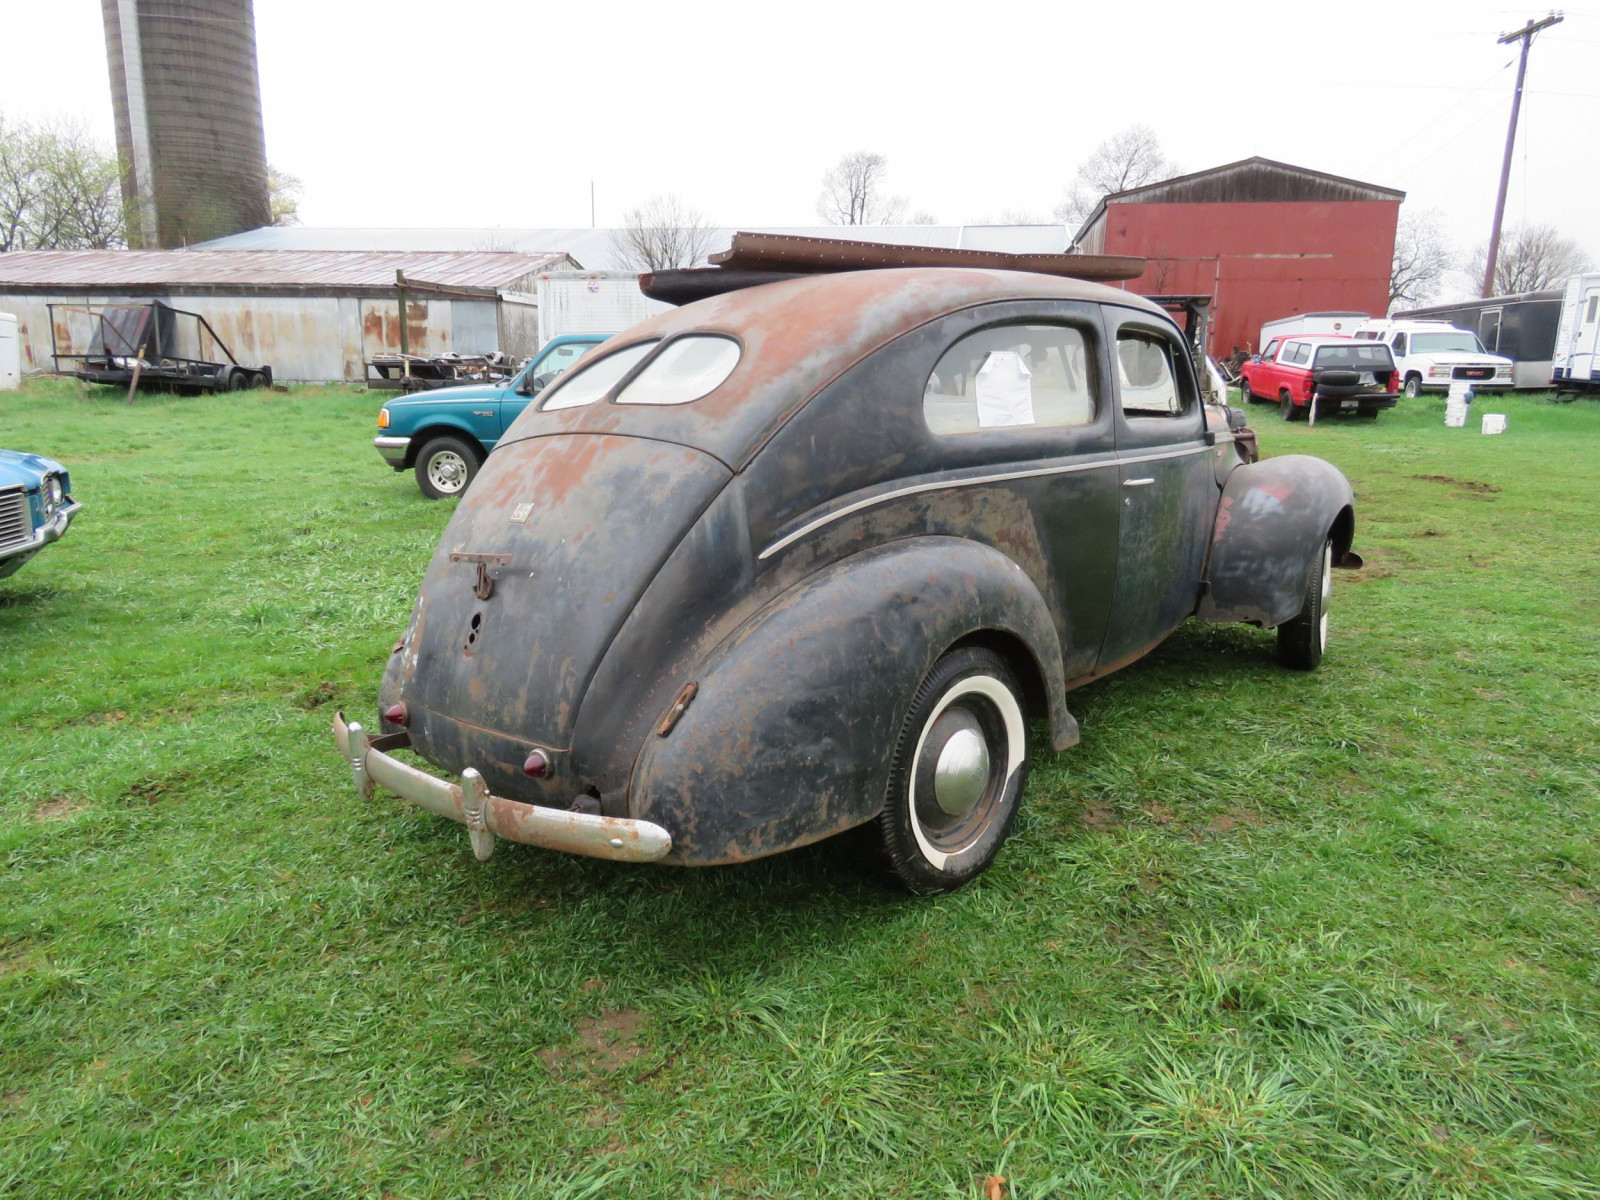 1940 Ford 2dr Sedan for Rod or Restore - Image 5